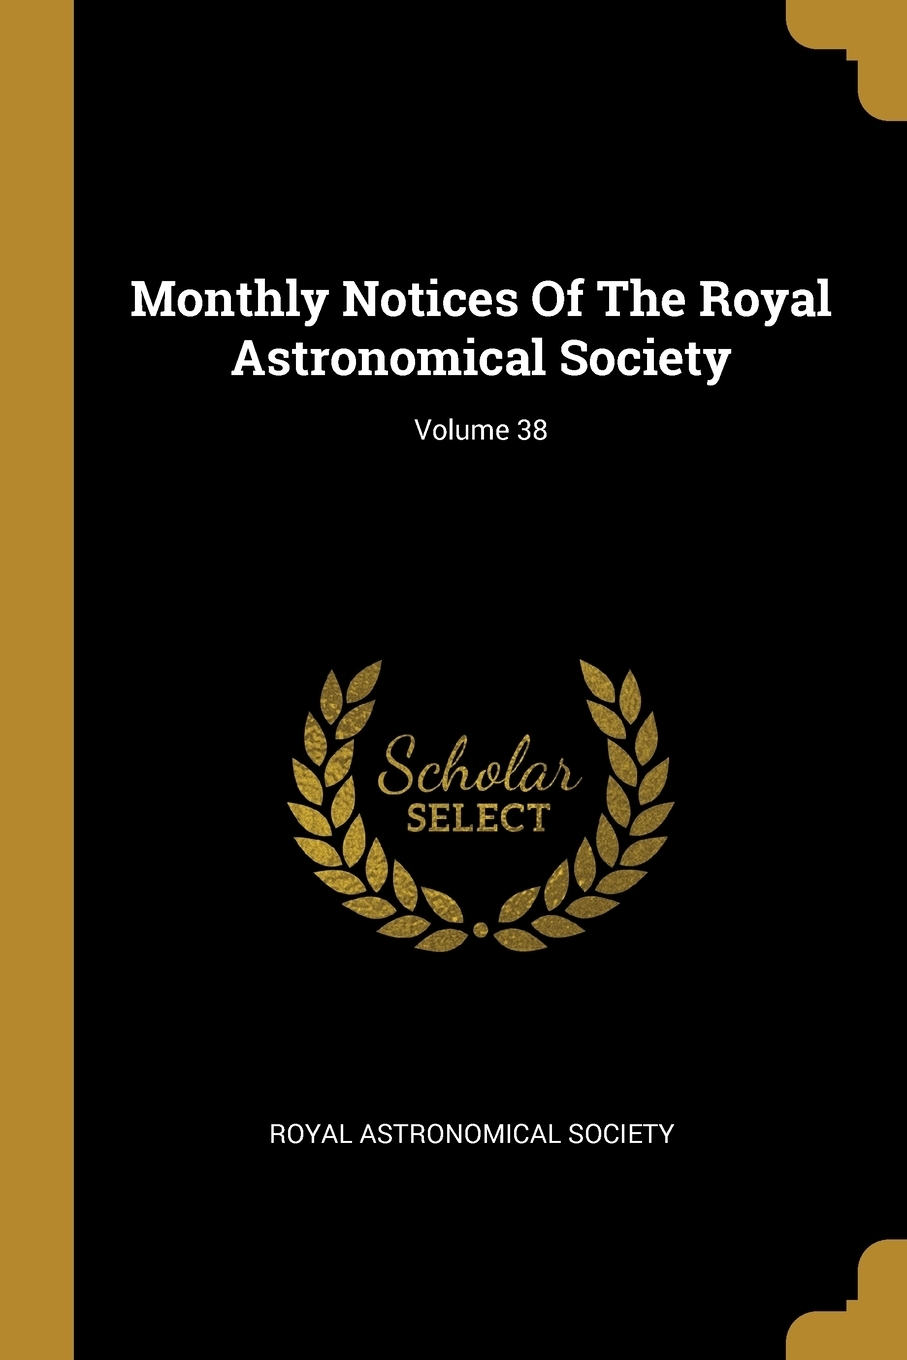 Royal Astronomical Society. Monthly Notices Of The Royal Astronomical Society; Volume 38